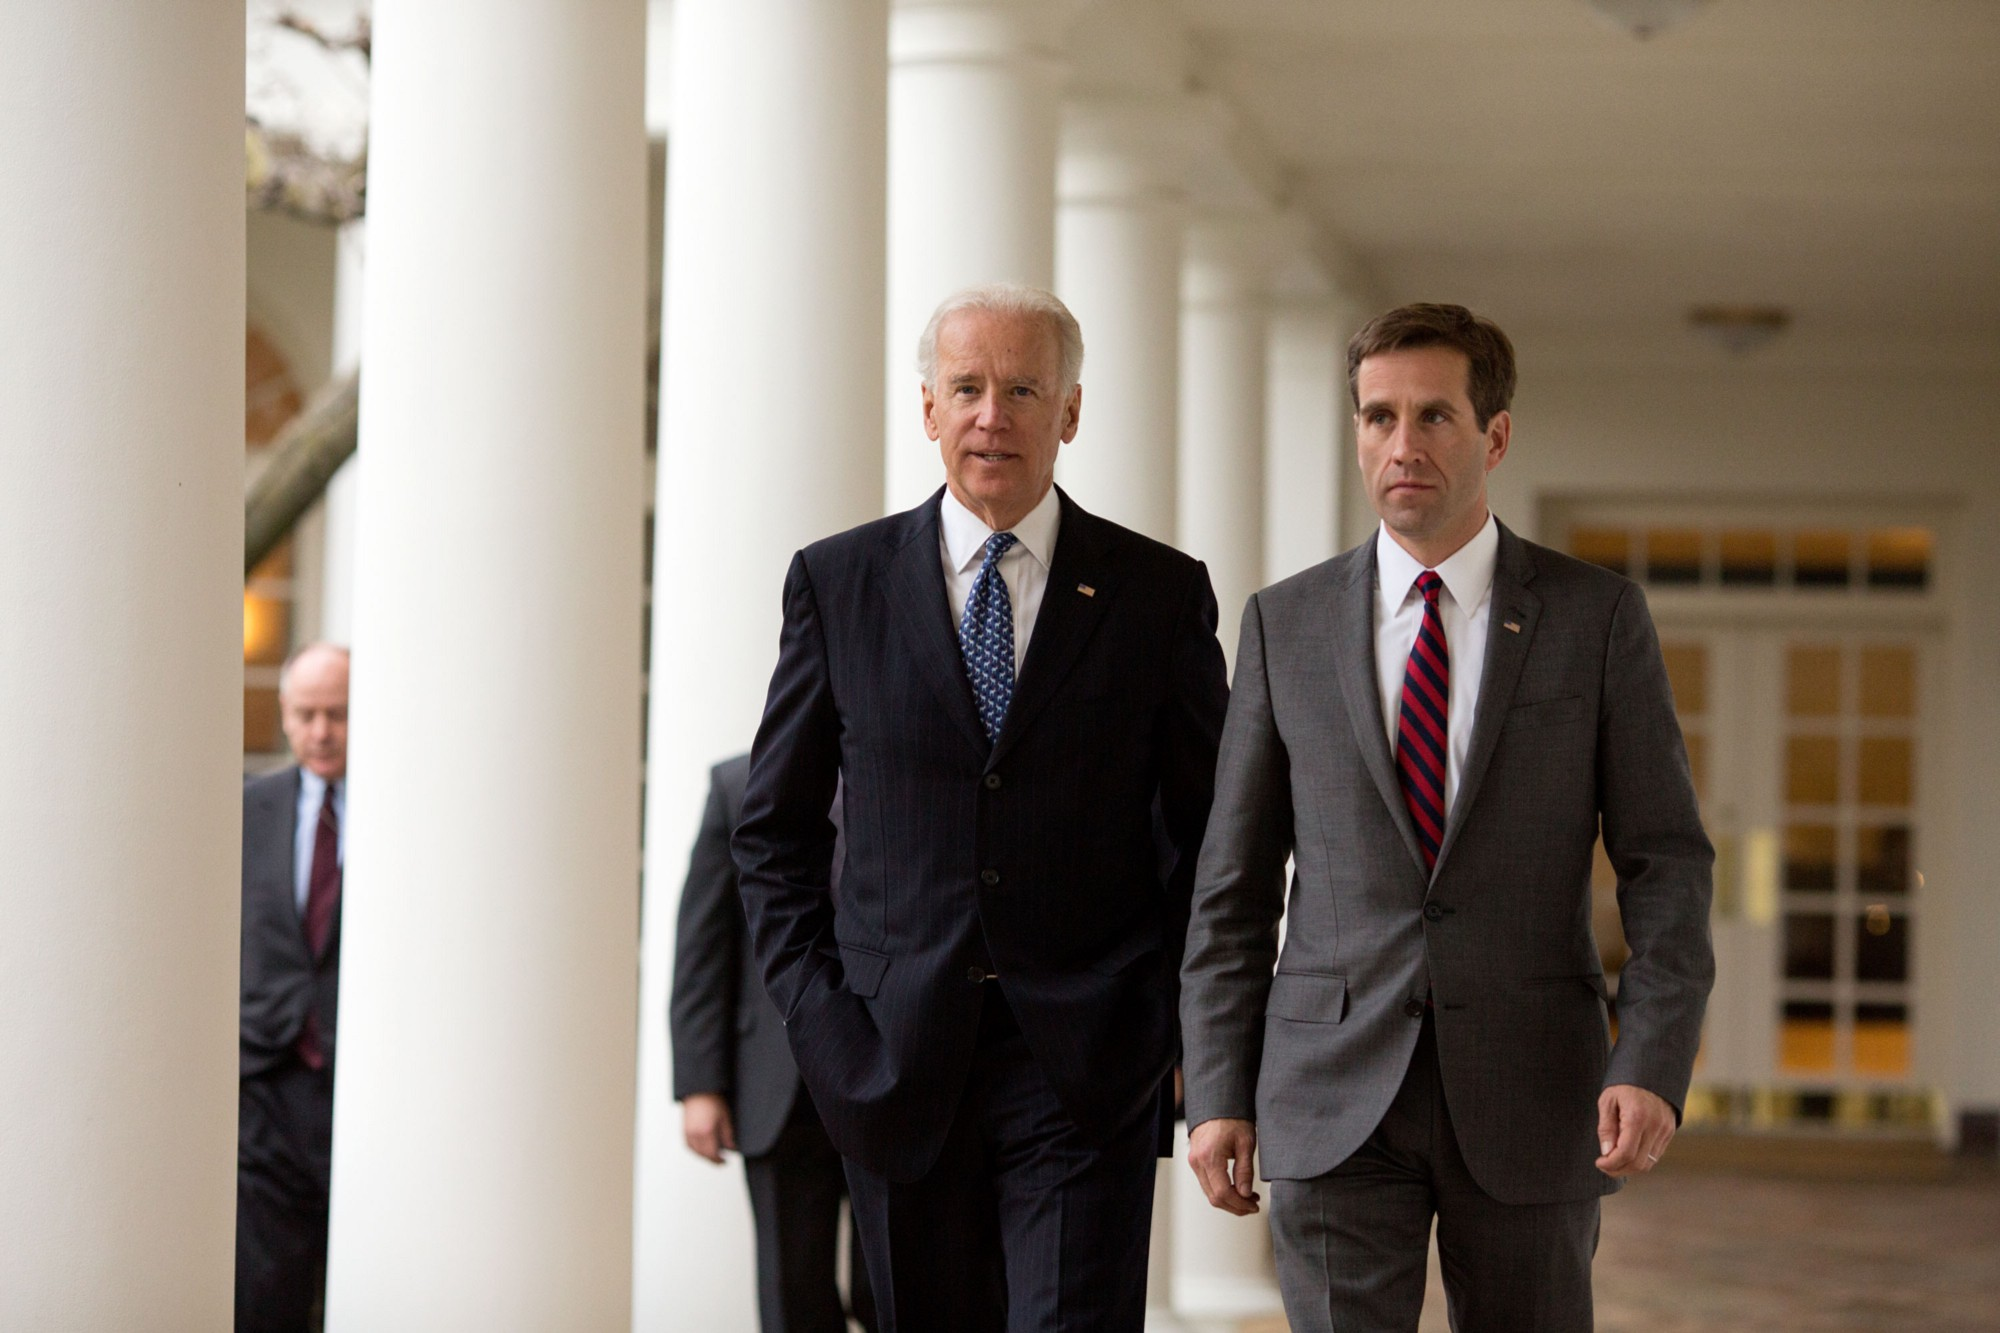 Beau Biden and Vice President Biden Walk at the White House